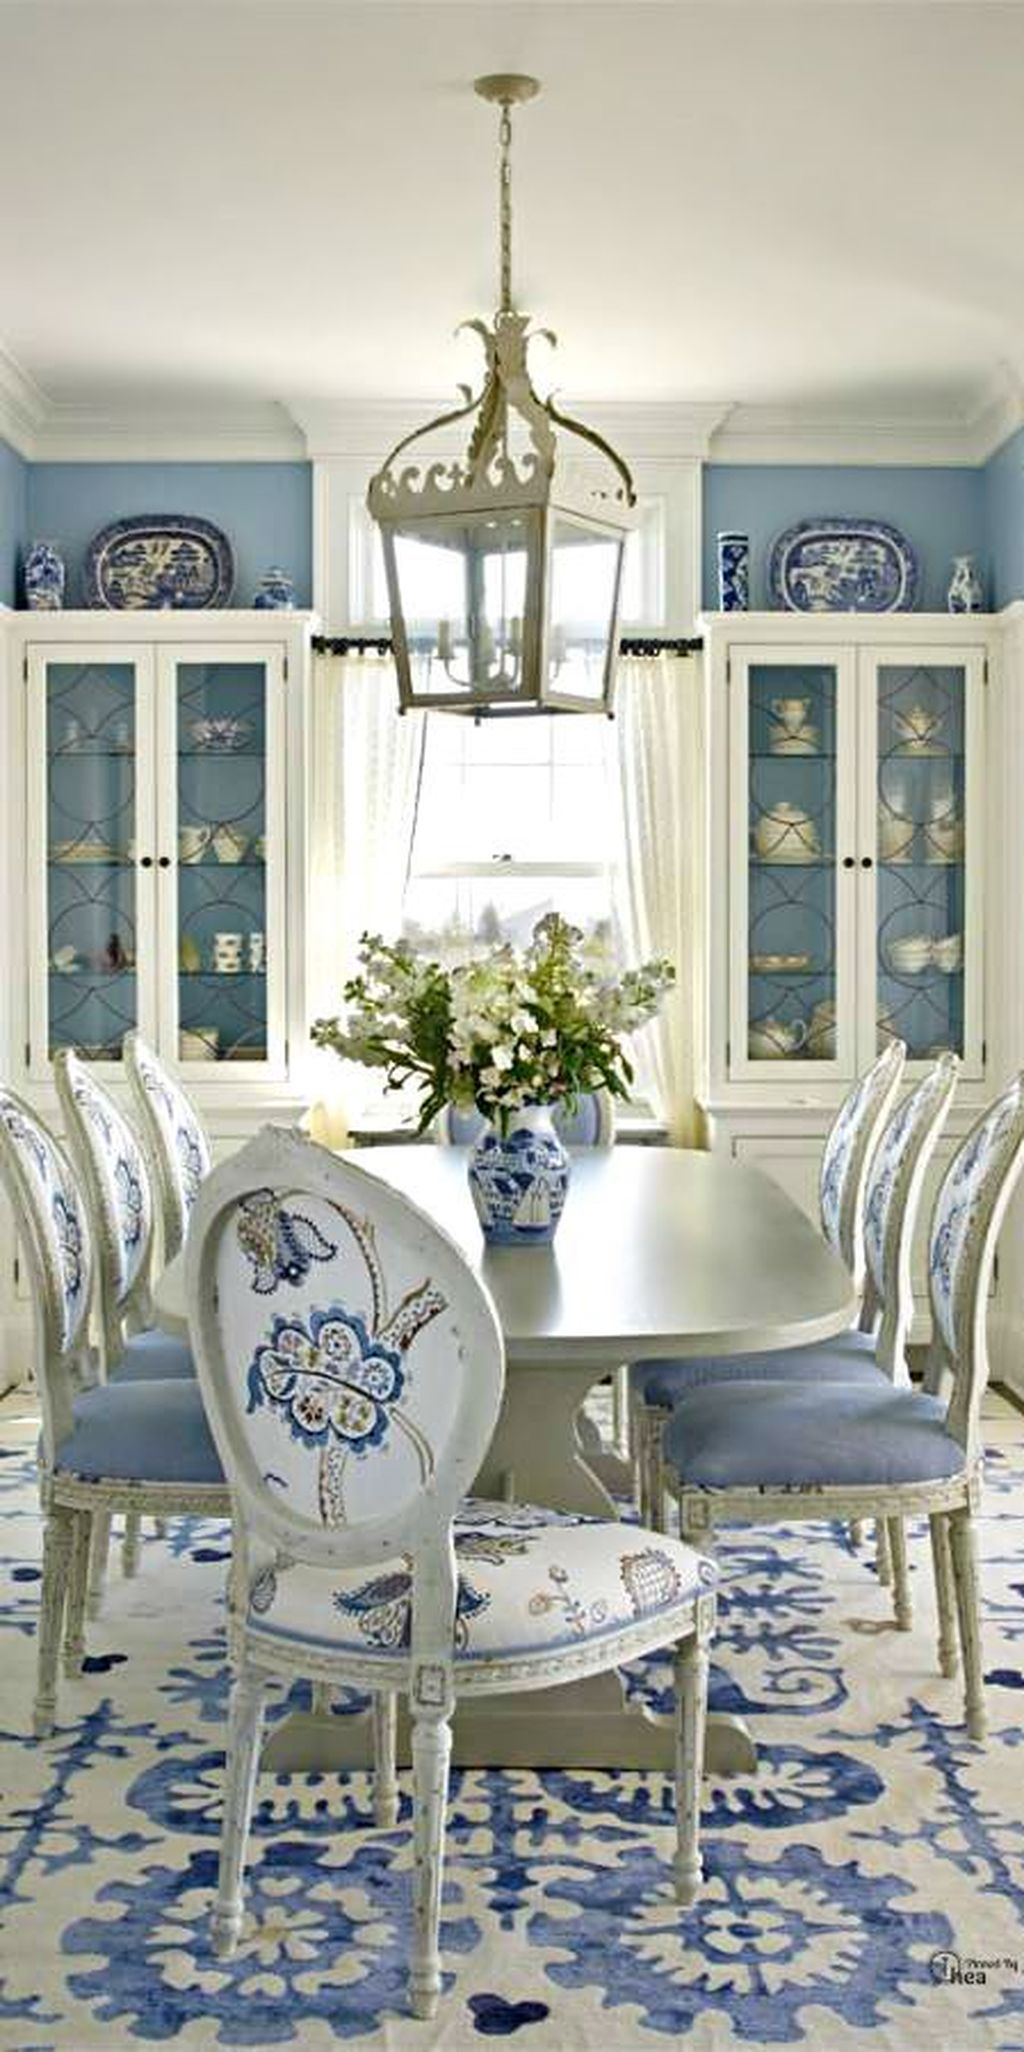 Inspiring Contemporary Style Decor Ideas For Dining Room 79